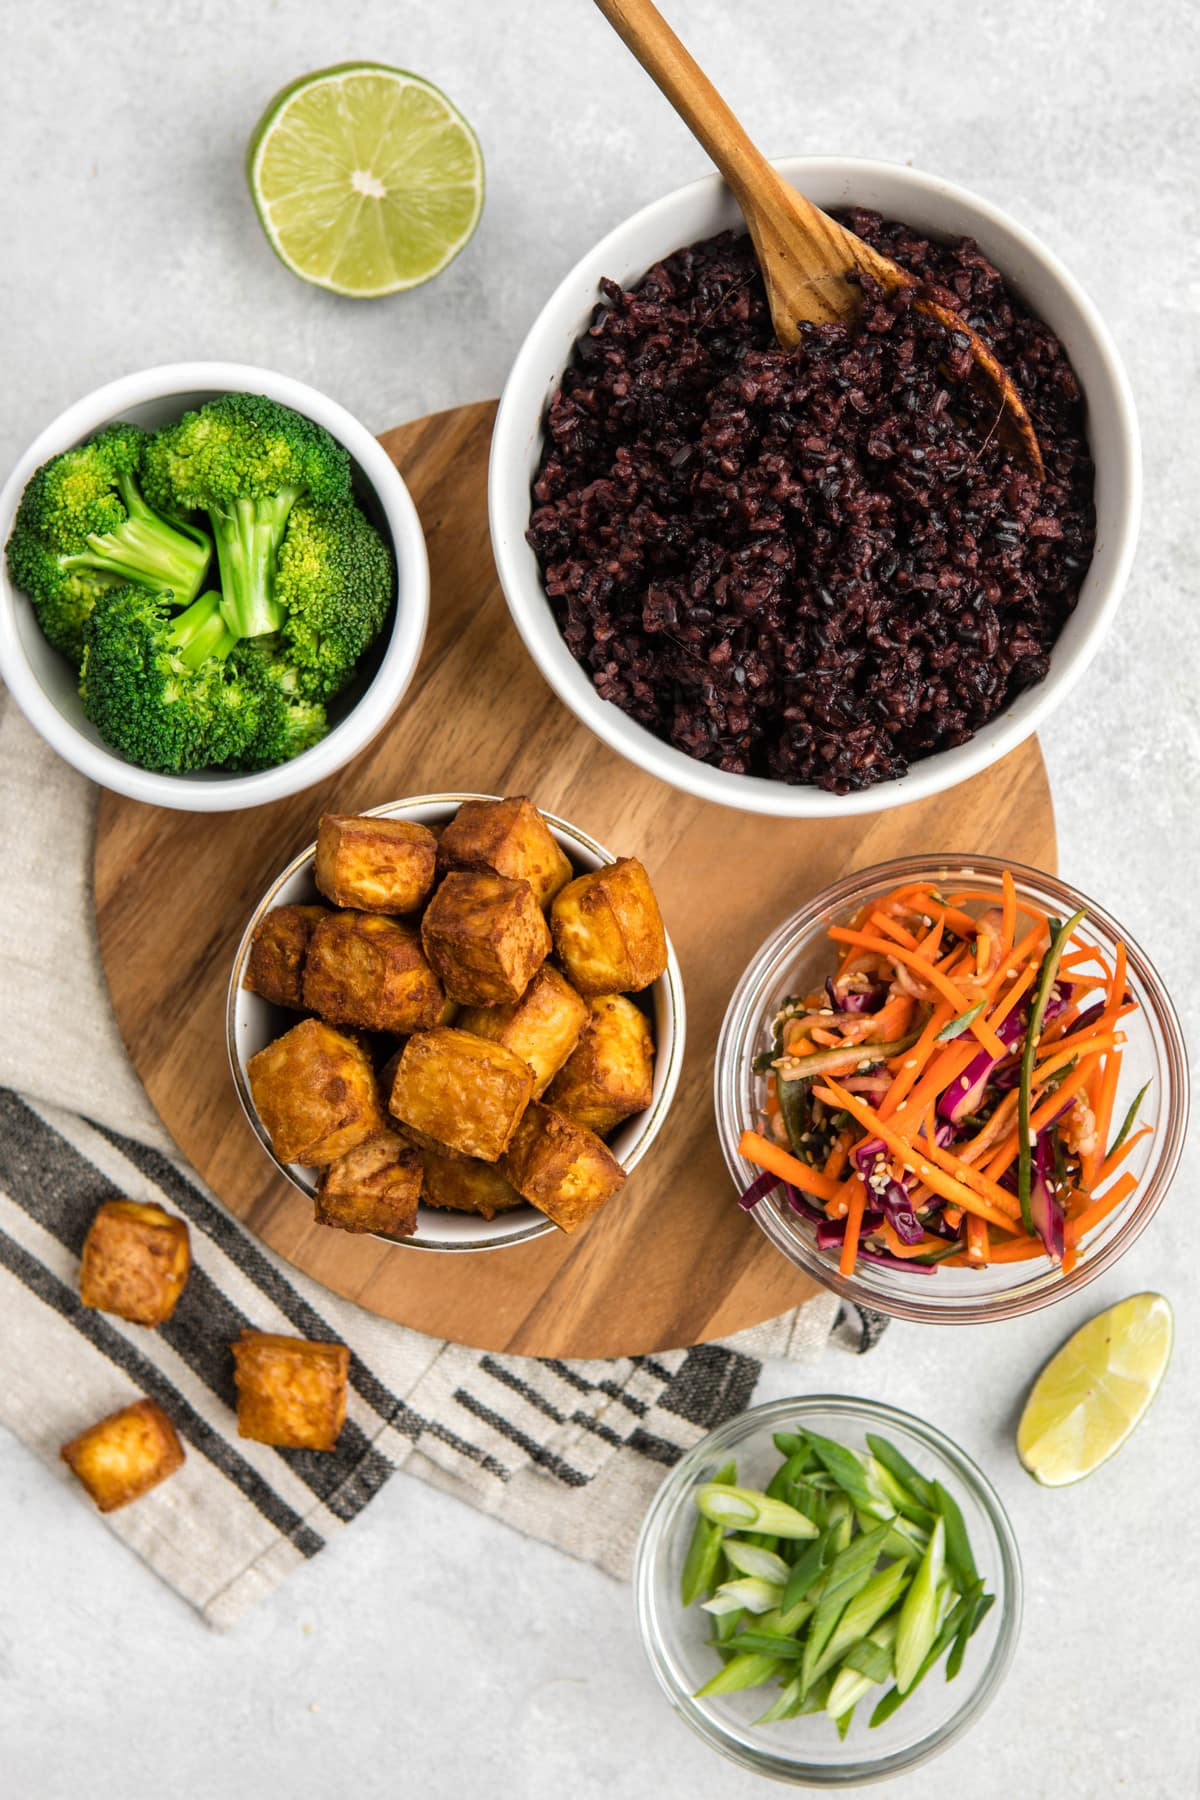 ingredients for black rice bowls in small glass bowls arranged on gray stone backdrop